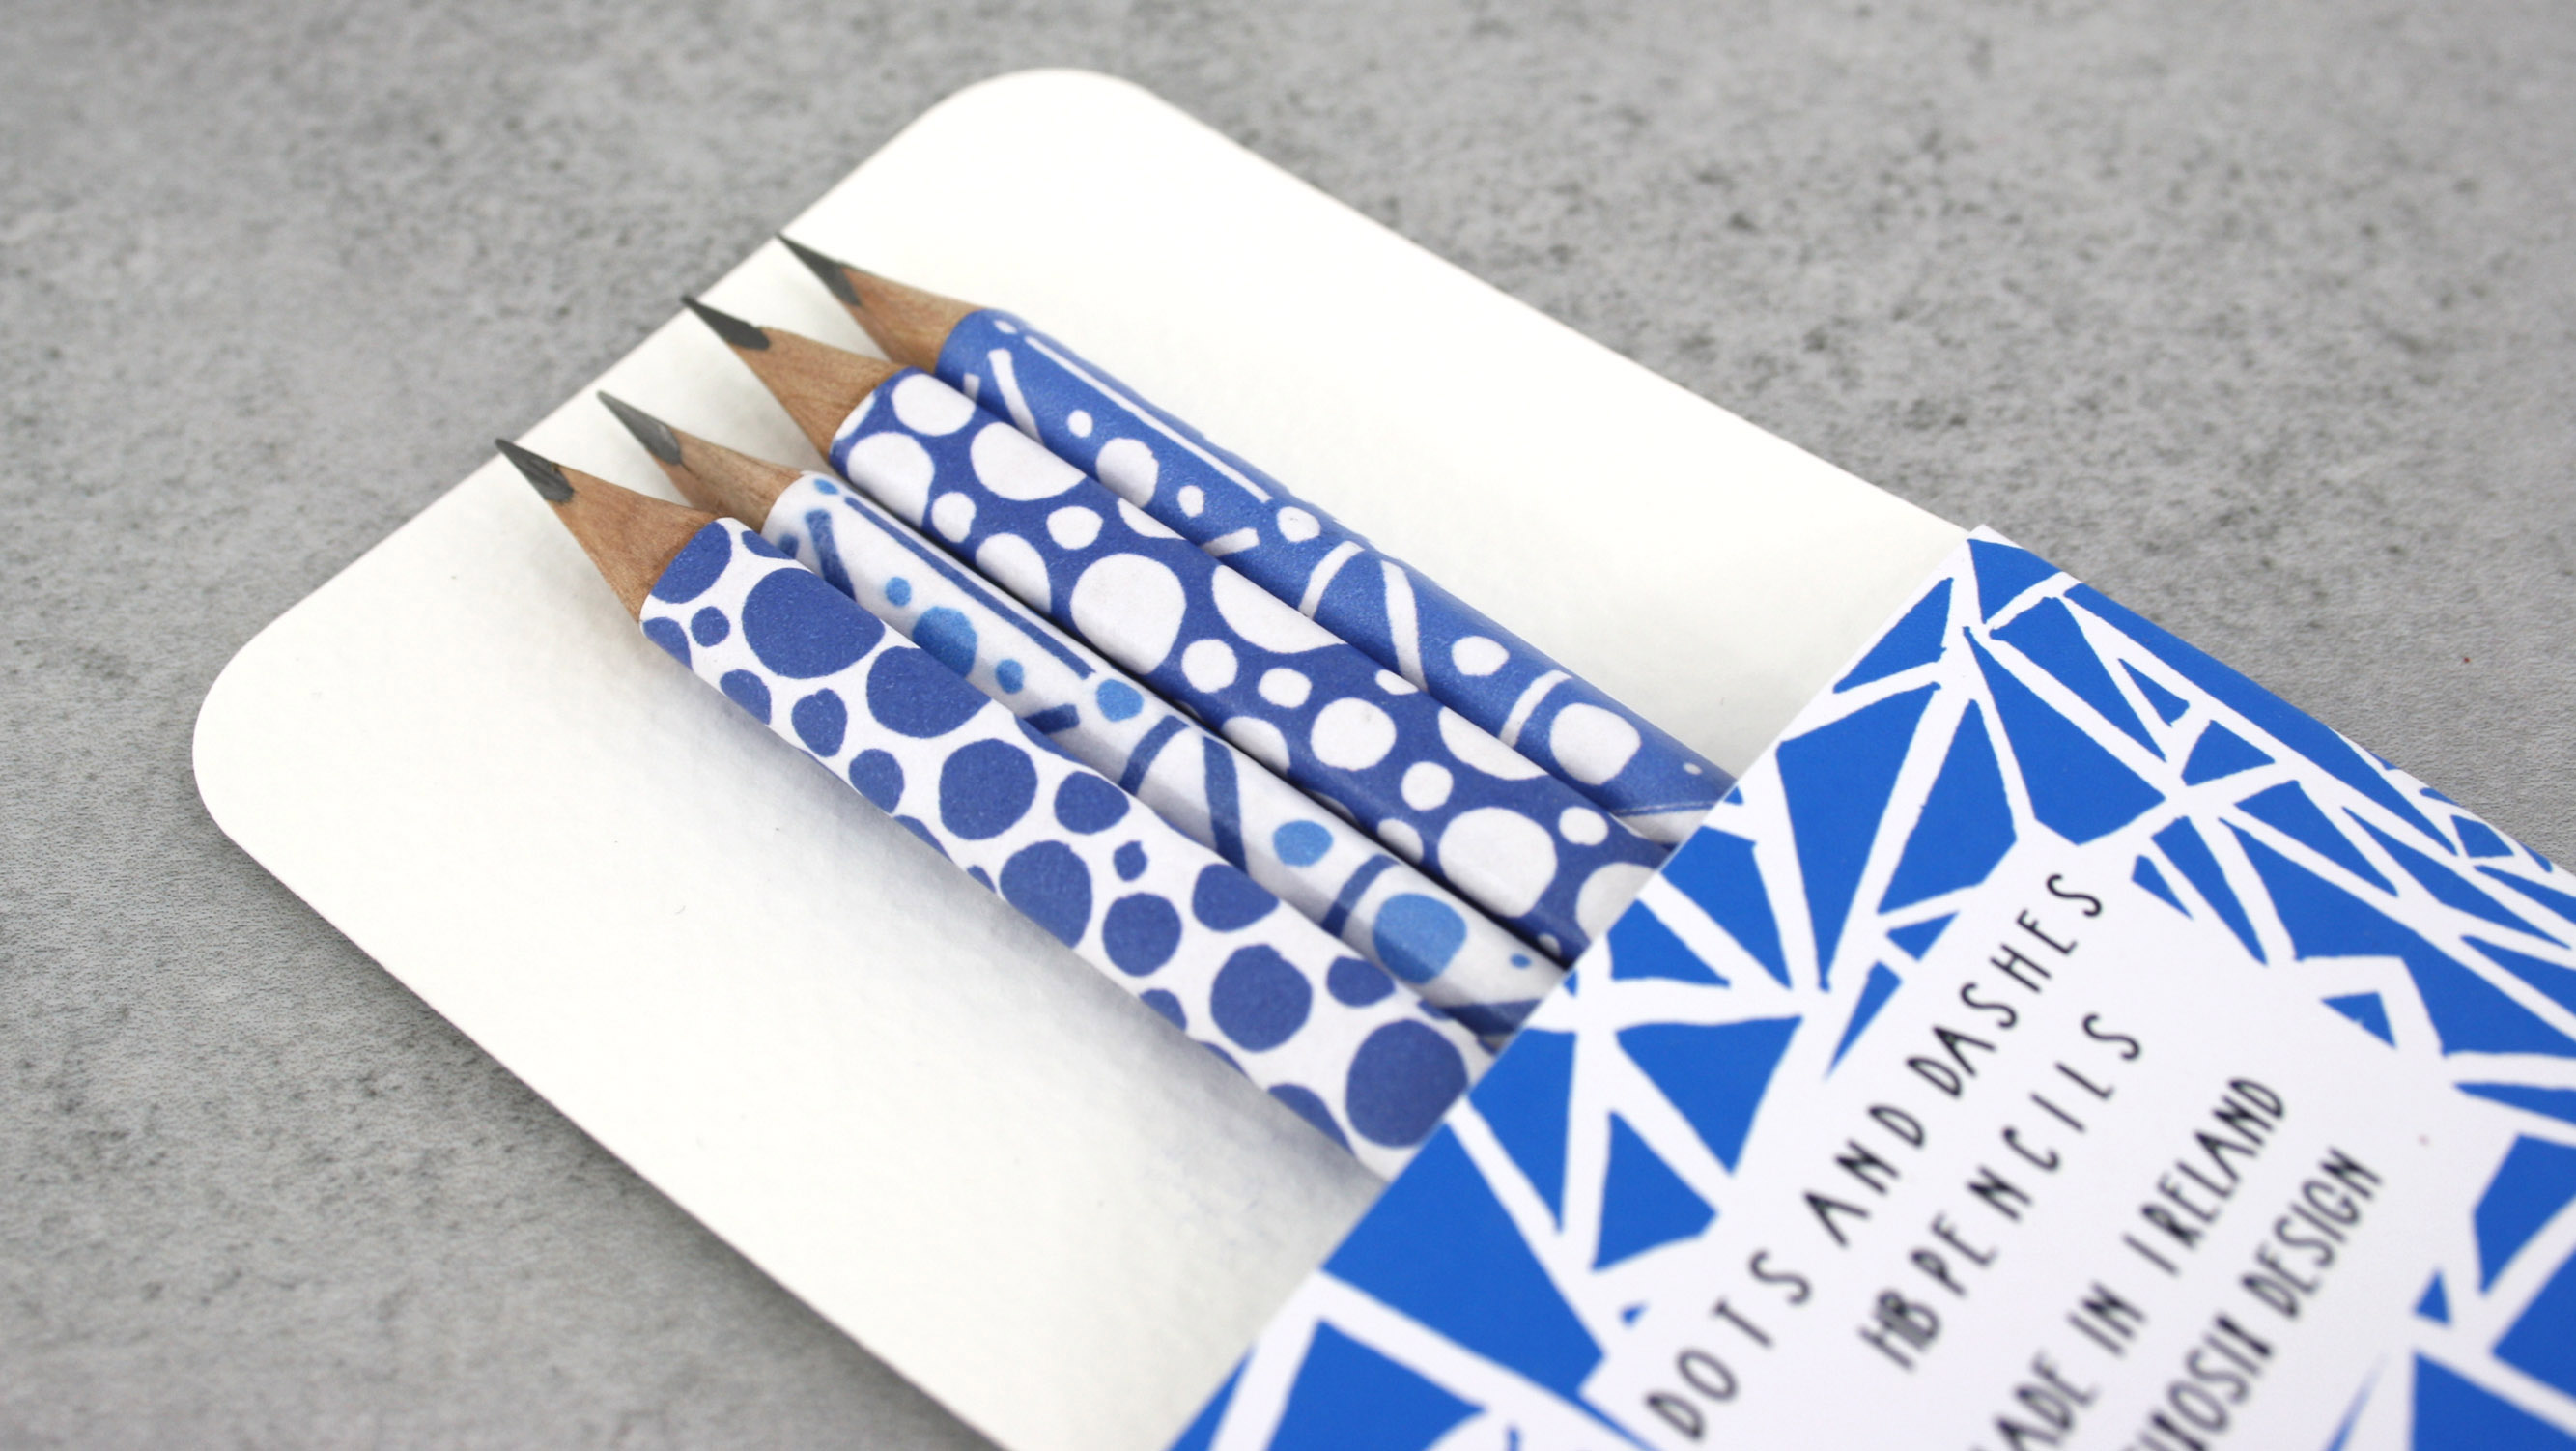 dots and dashes pencils a new design direction